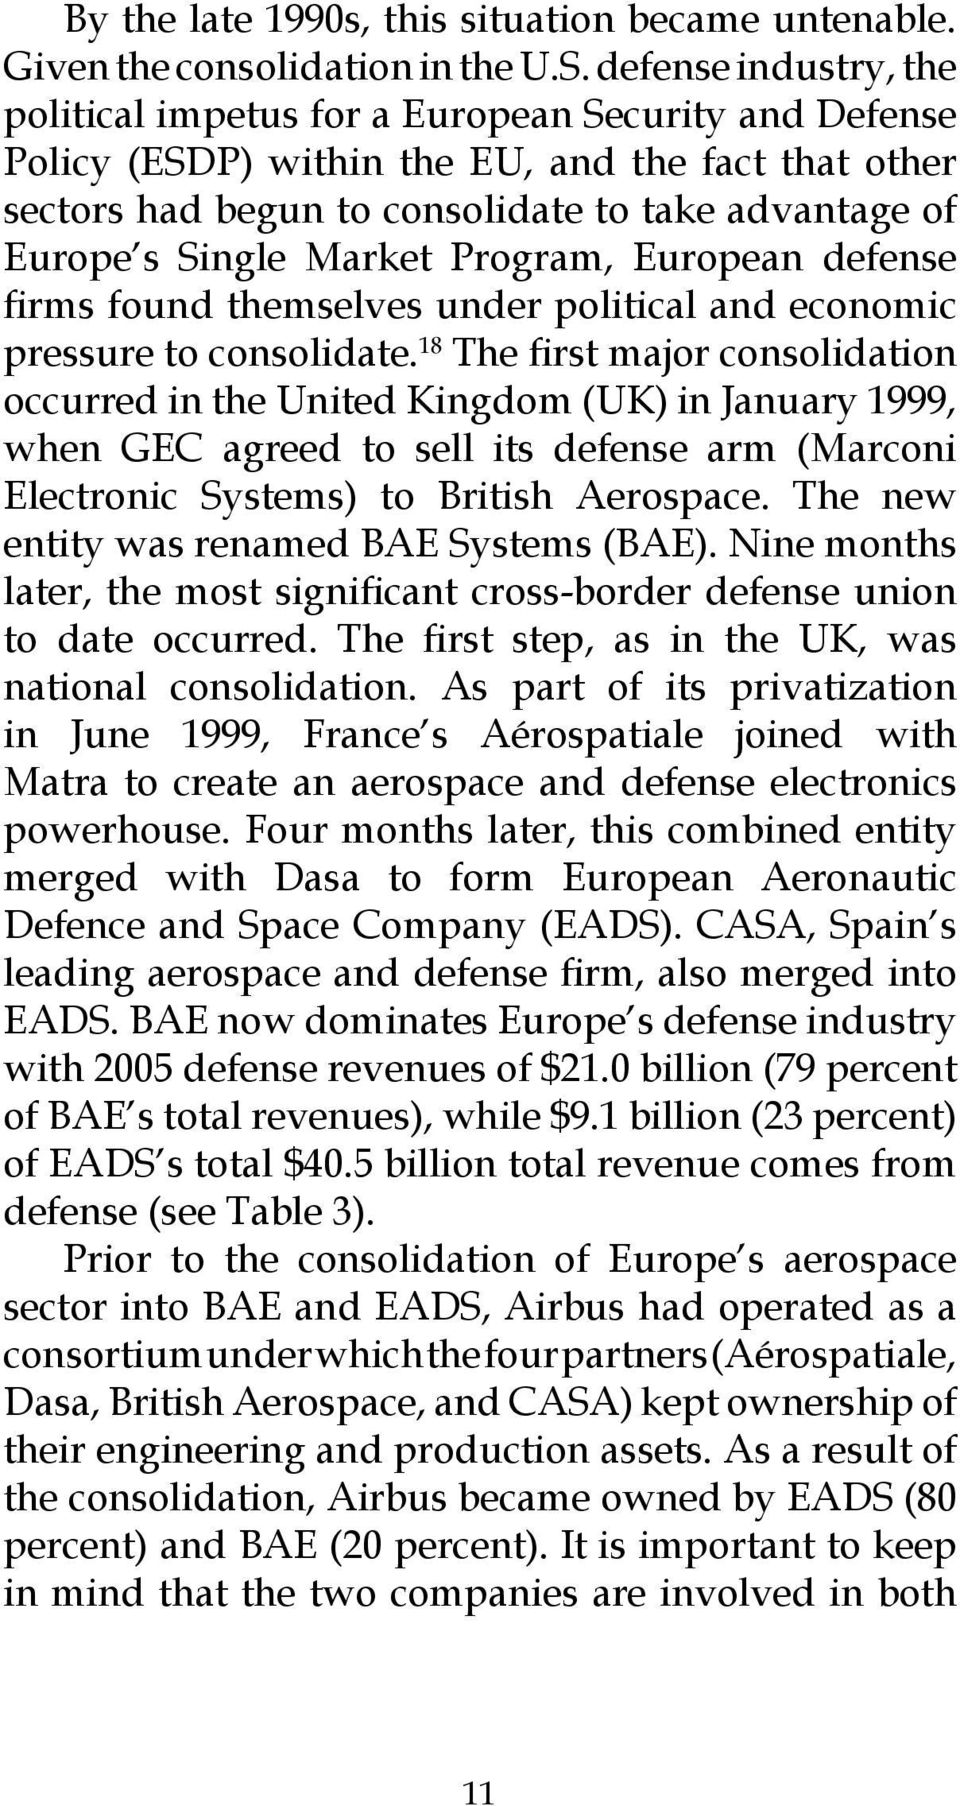 Market Program, European defense firms found themselves under political and economic pressure to consolidate.